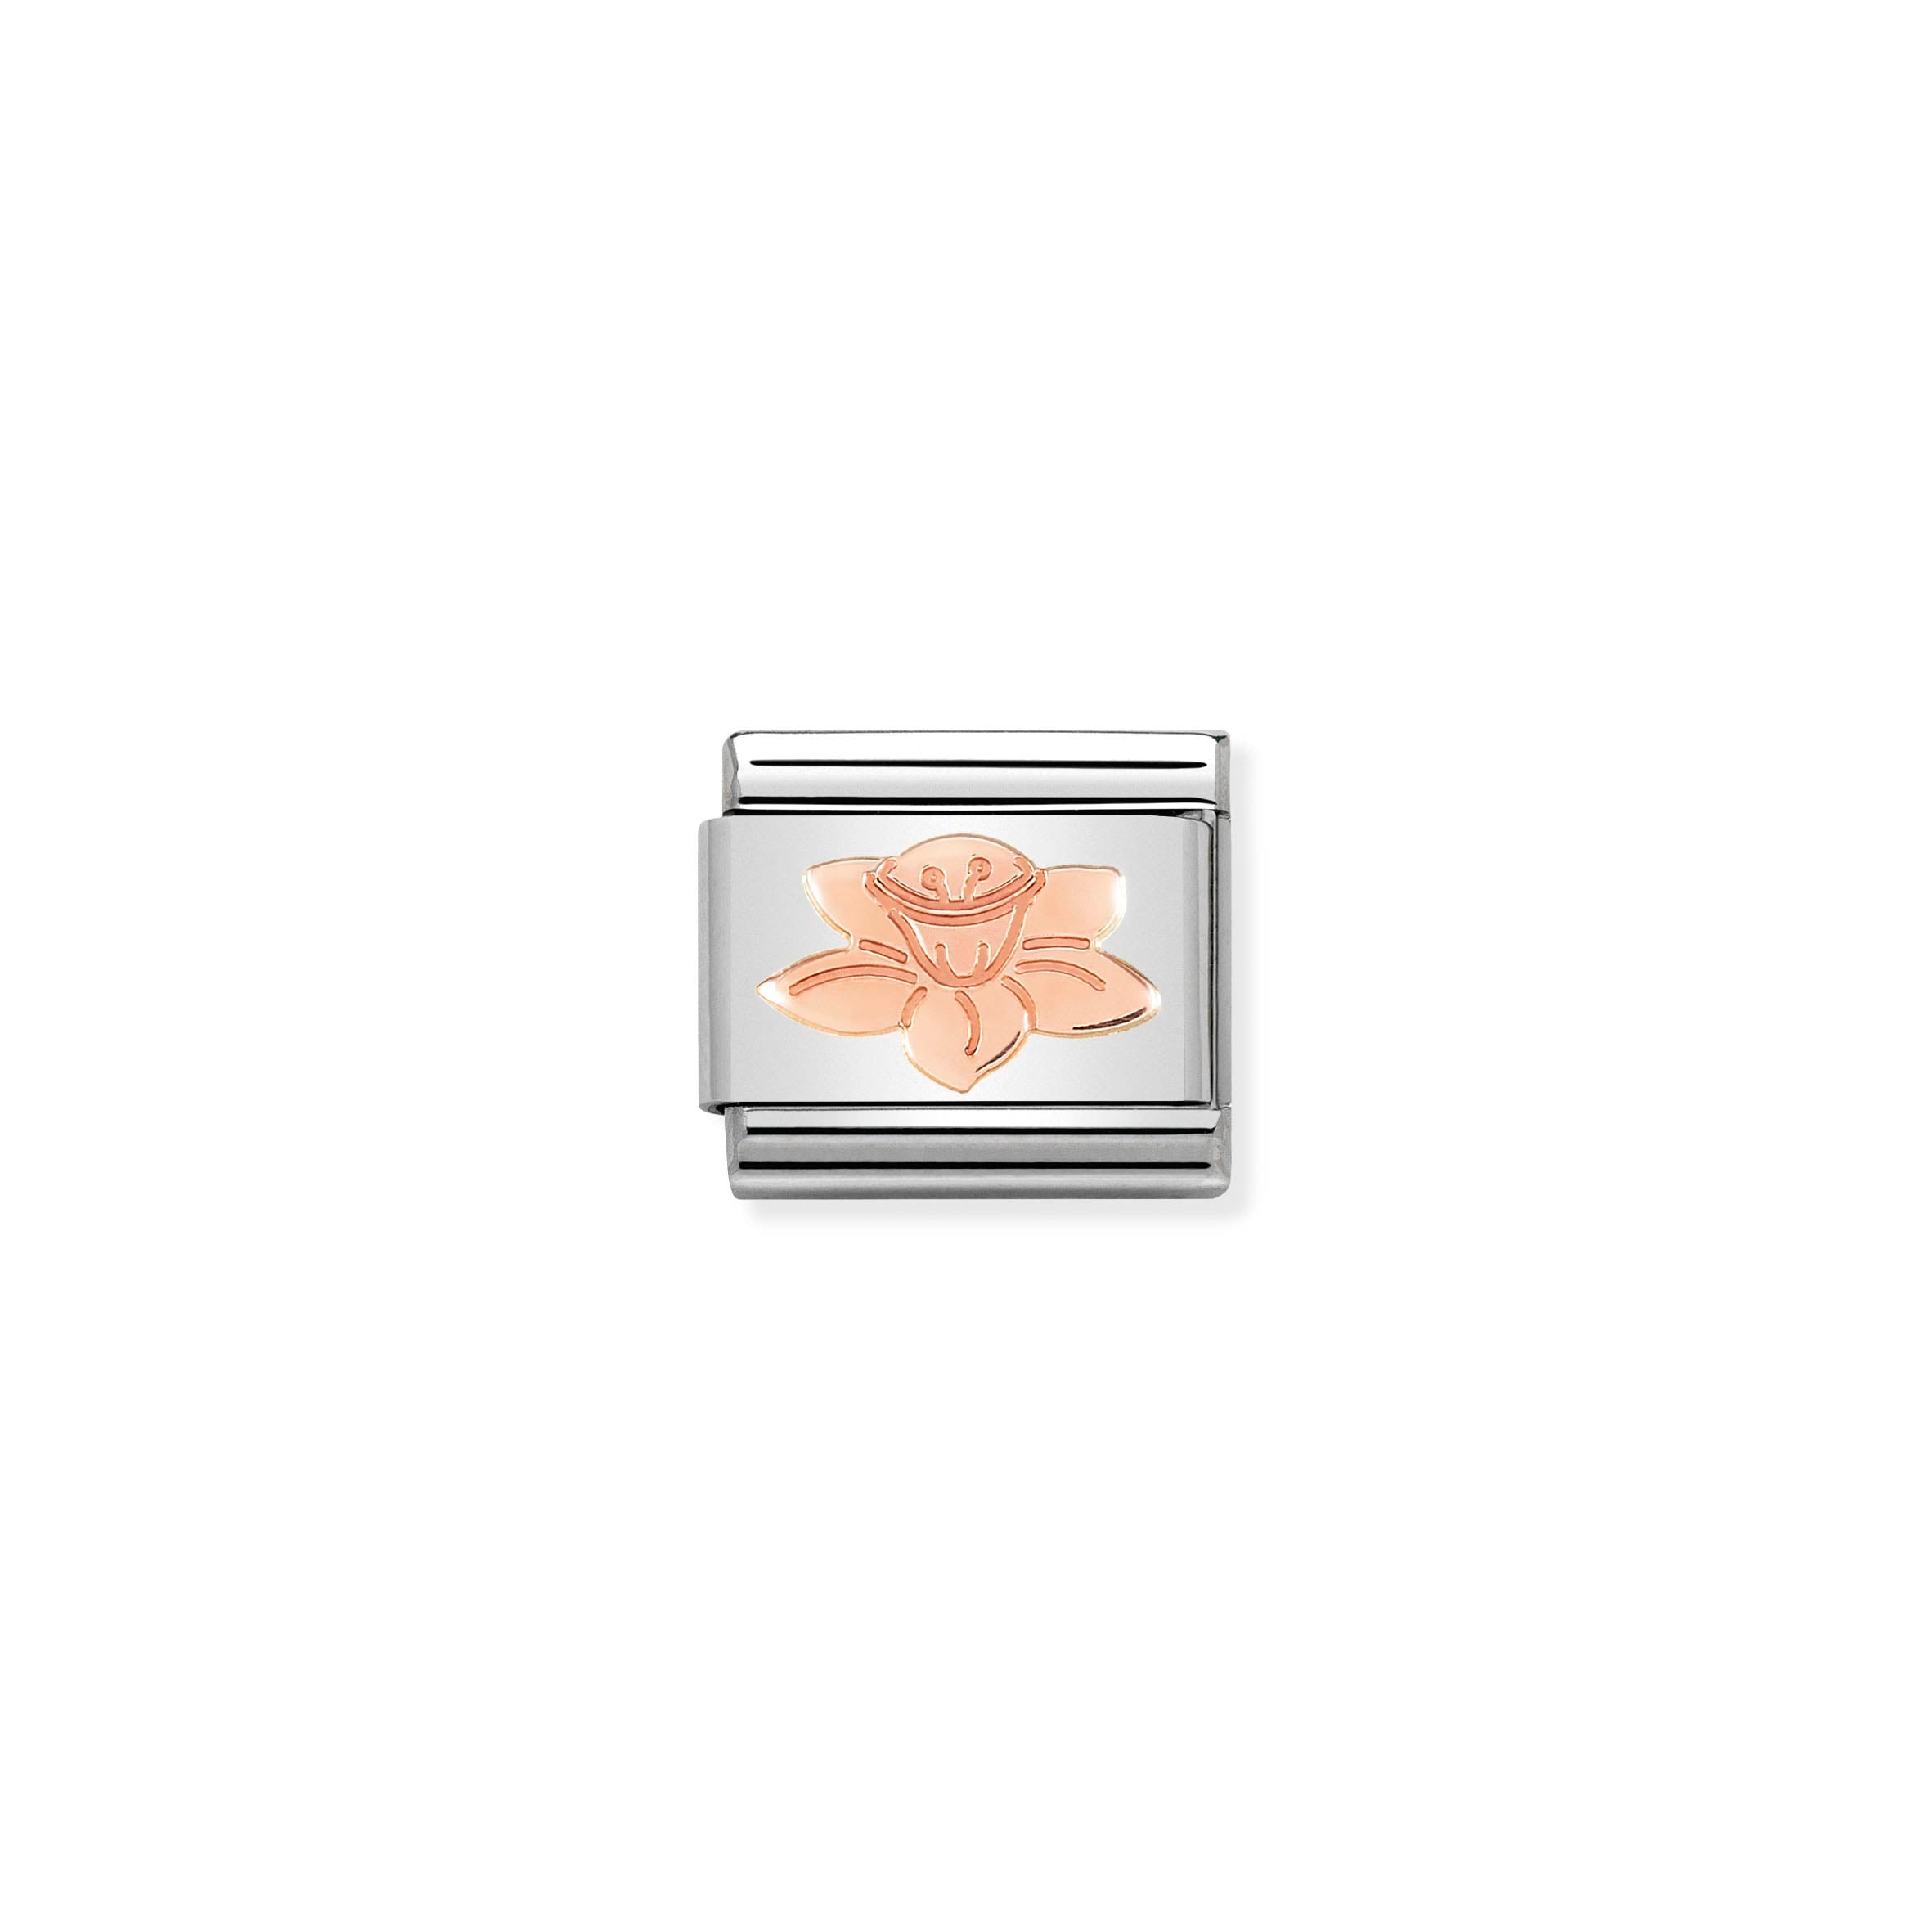 NOMINATION - Composable Classic SYMBOLS st/steel & 9ct rose gold (Daffodil)